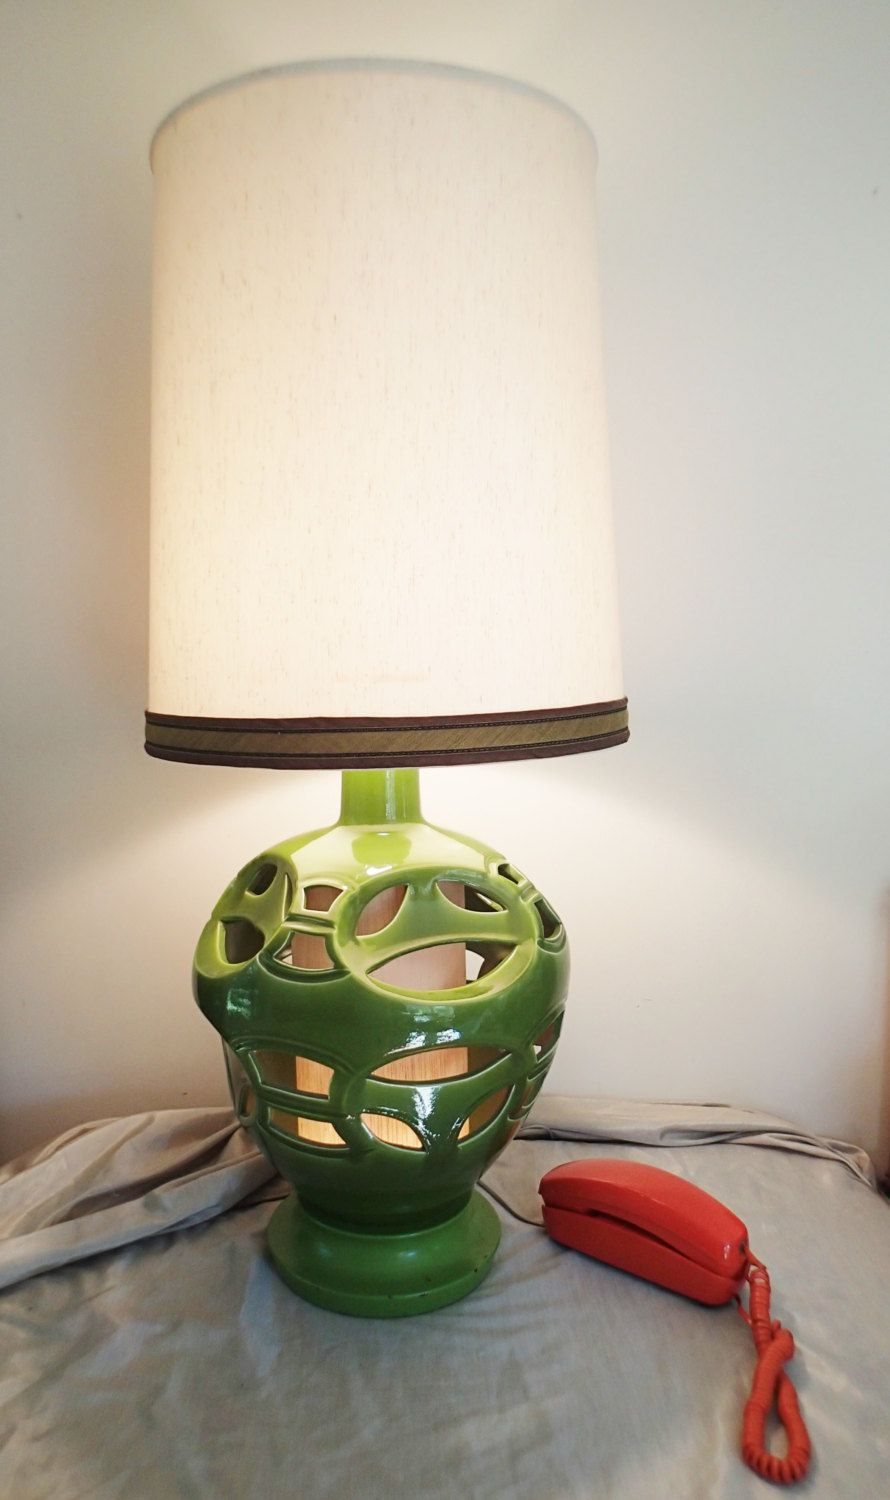 Large green table lamp avocado green cut out ceramic body mood table lamp floor lamp huge mid century cut out ceramic lamp avocado green ceramic aloadofball Images